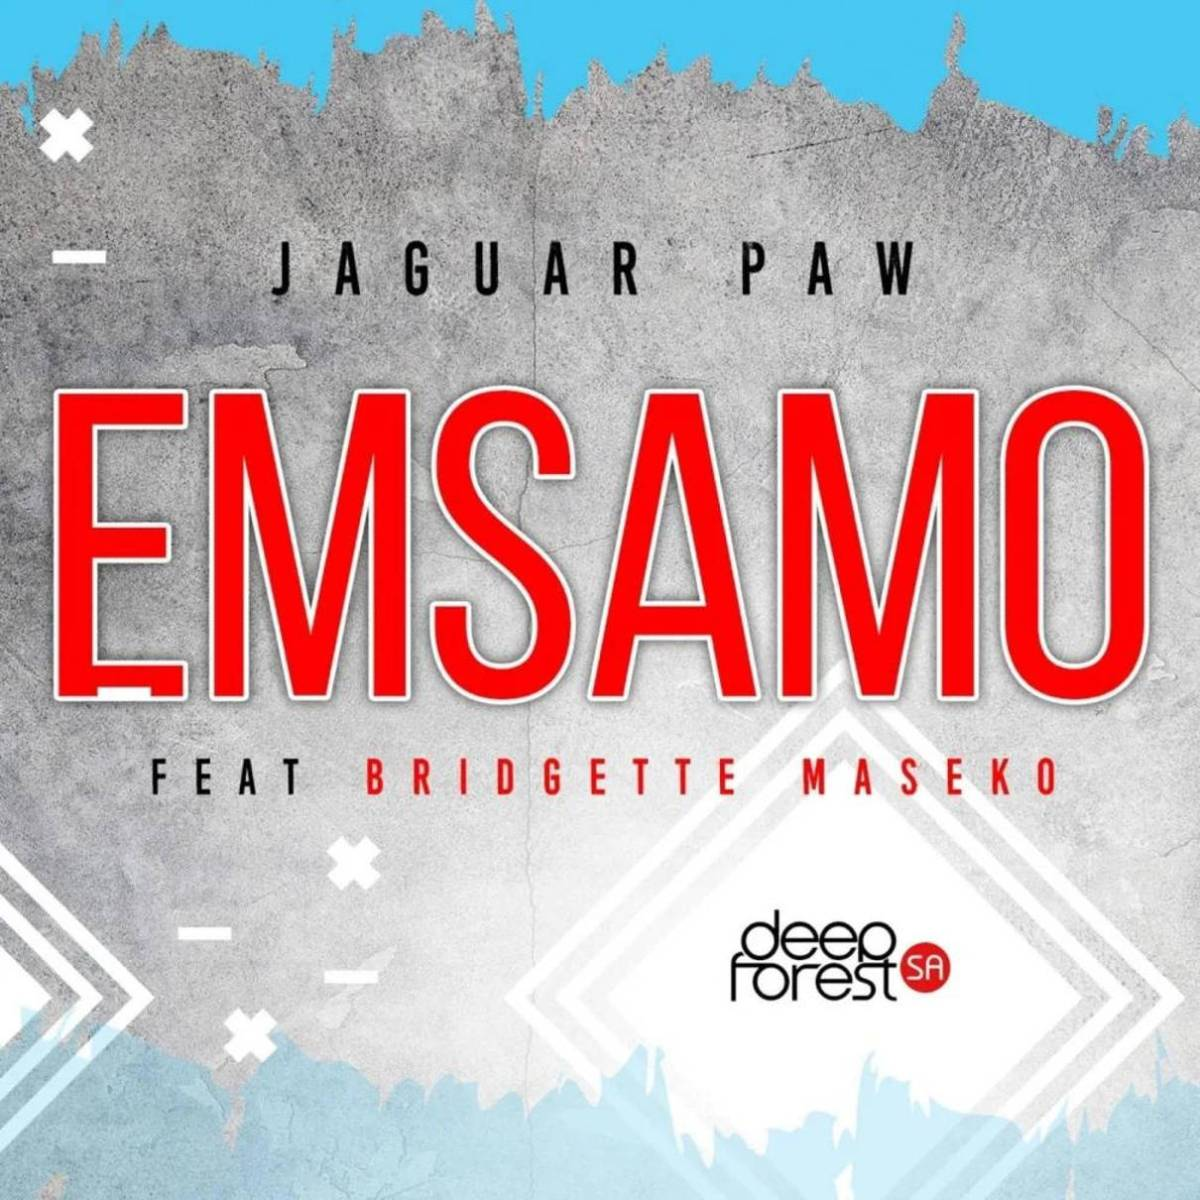 Jaguar Paw & Bridgette Maseko - Emsamo (Original Mix)